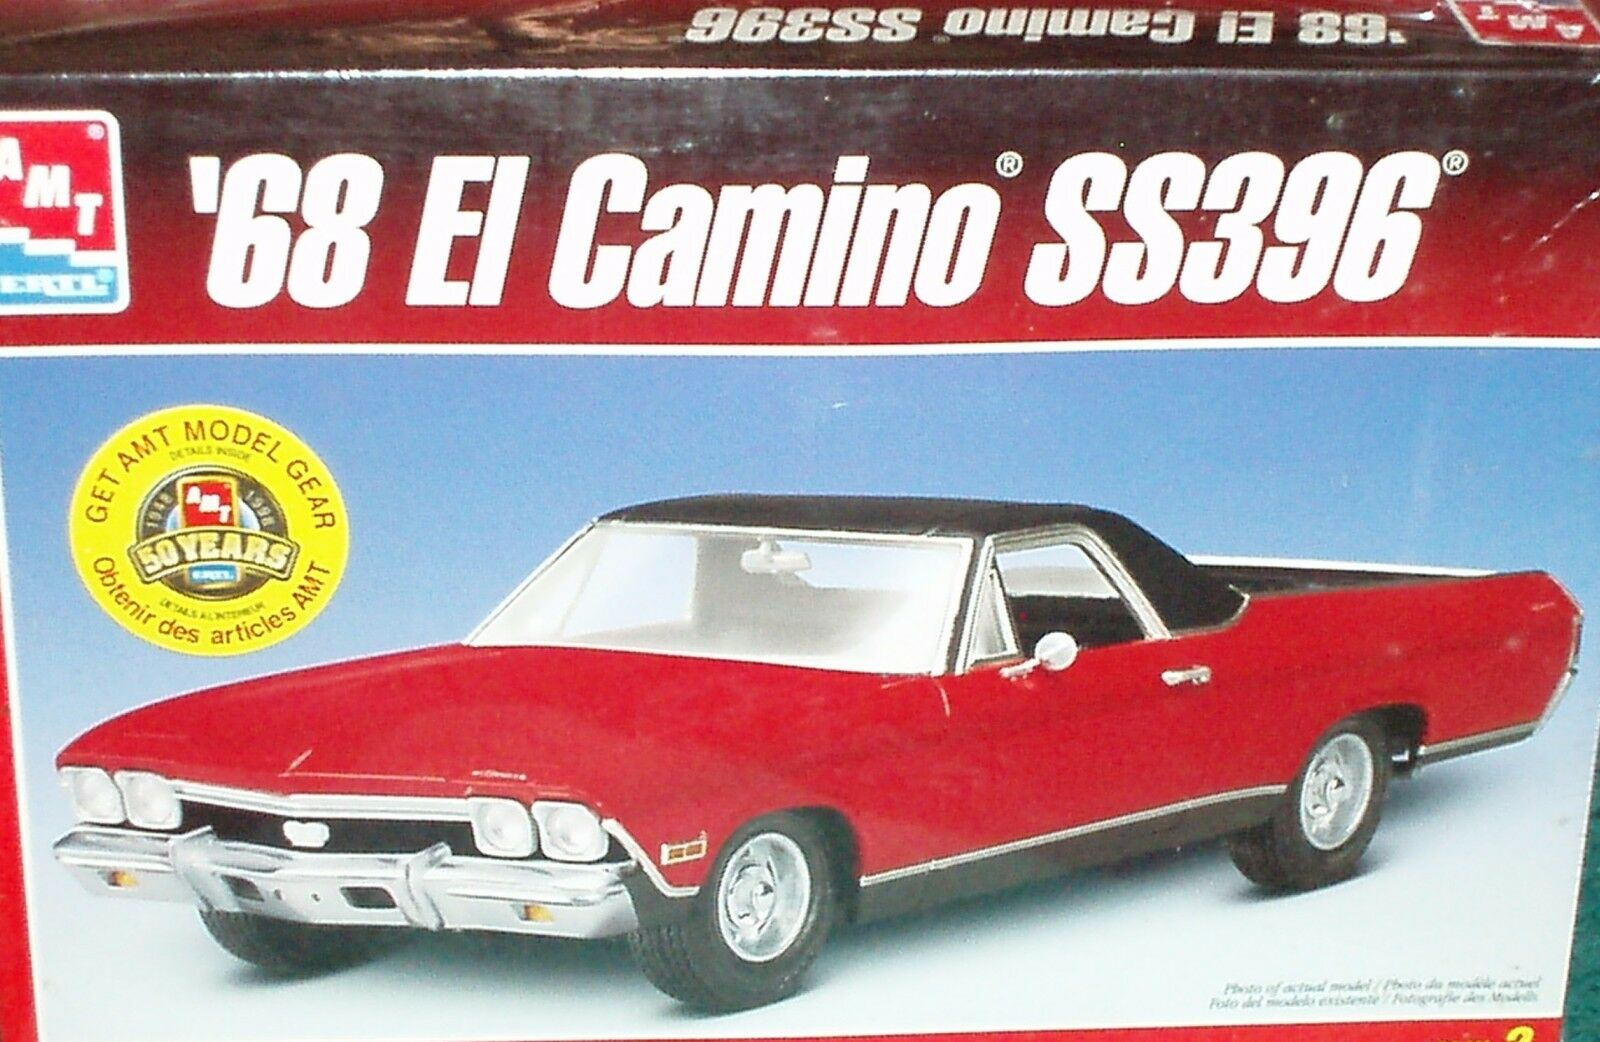 AMT 1968 CHEVY EL CAMINO SS396 PLASTIC MODEL KIT SEALED IN BOX 1 25